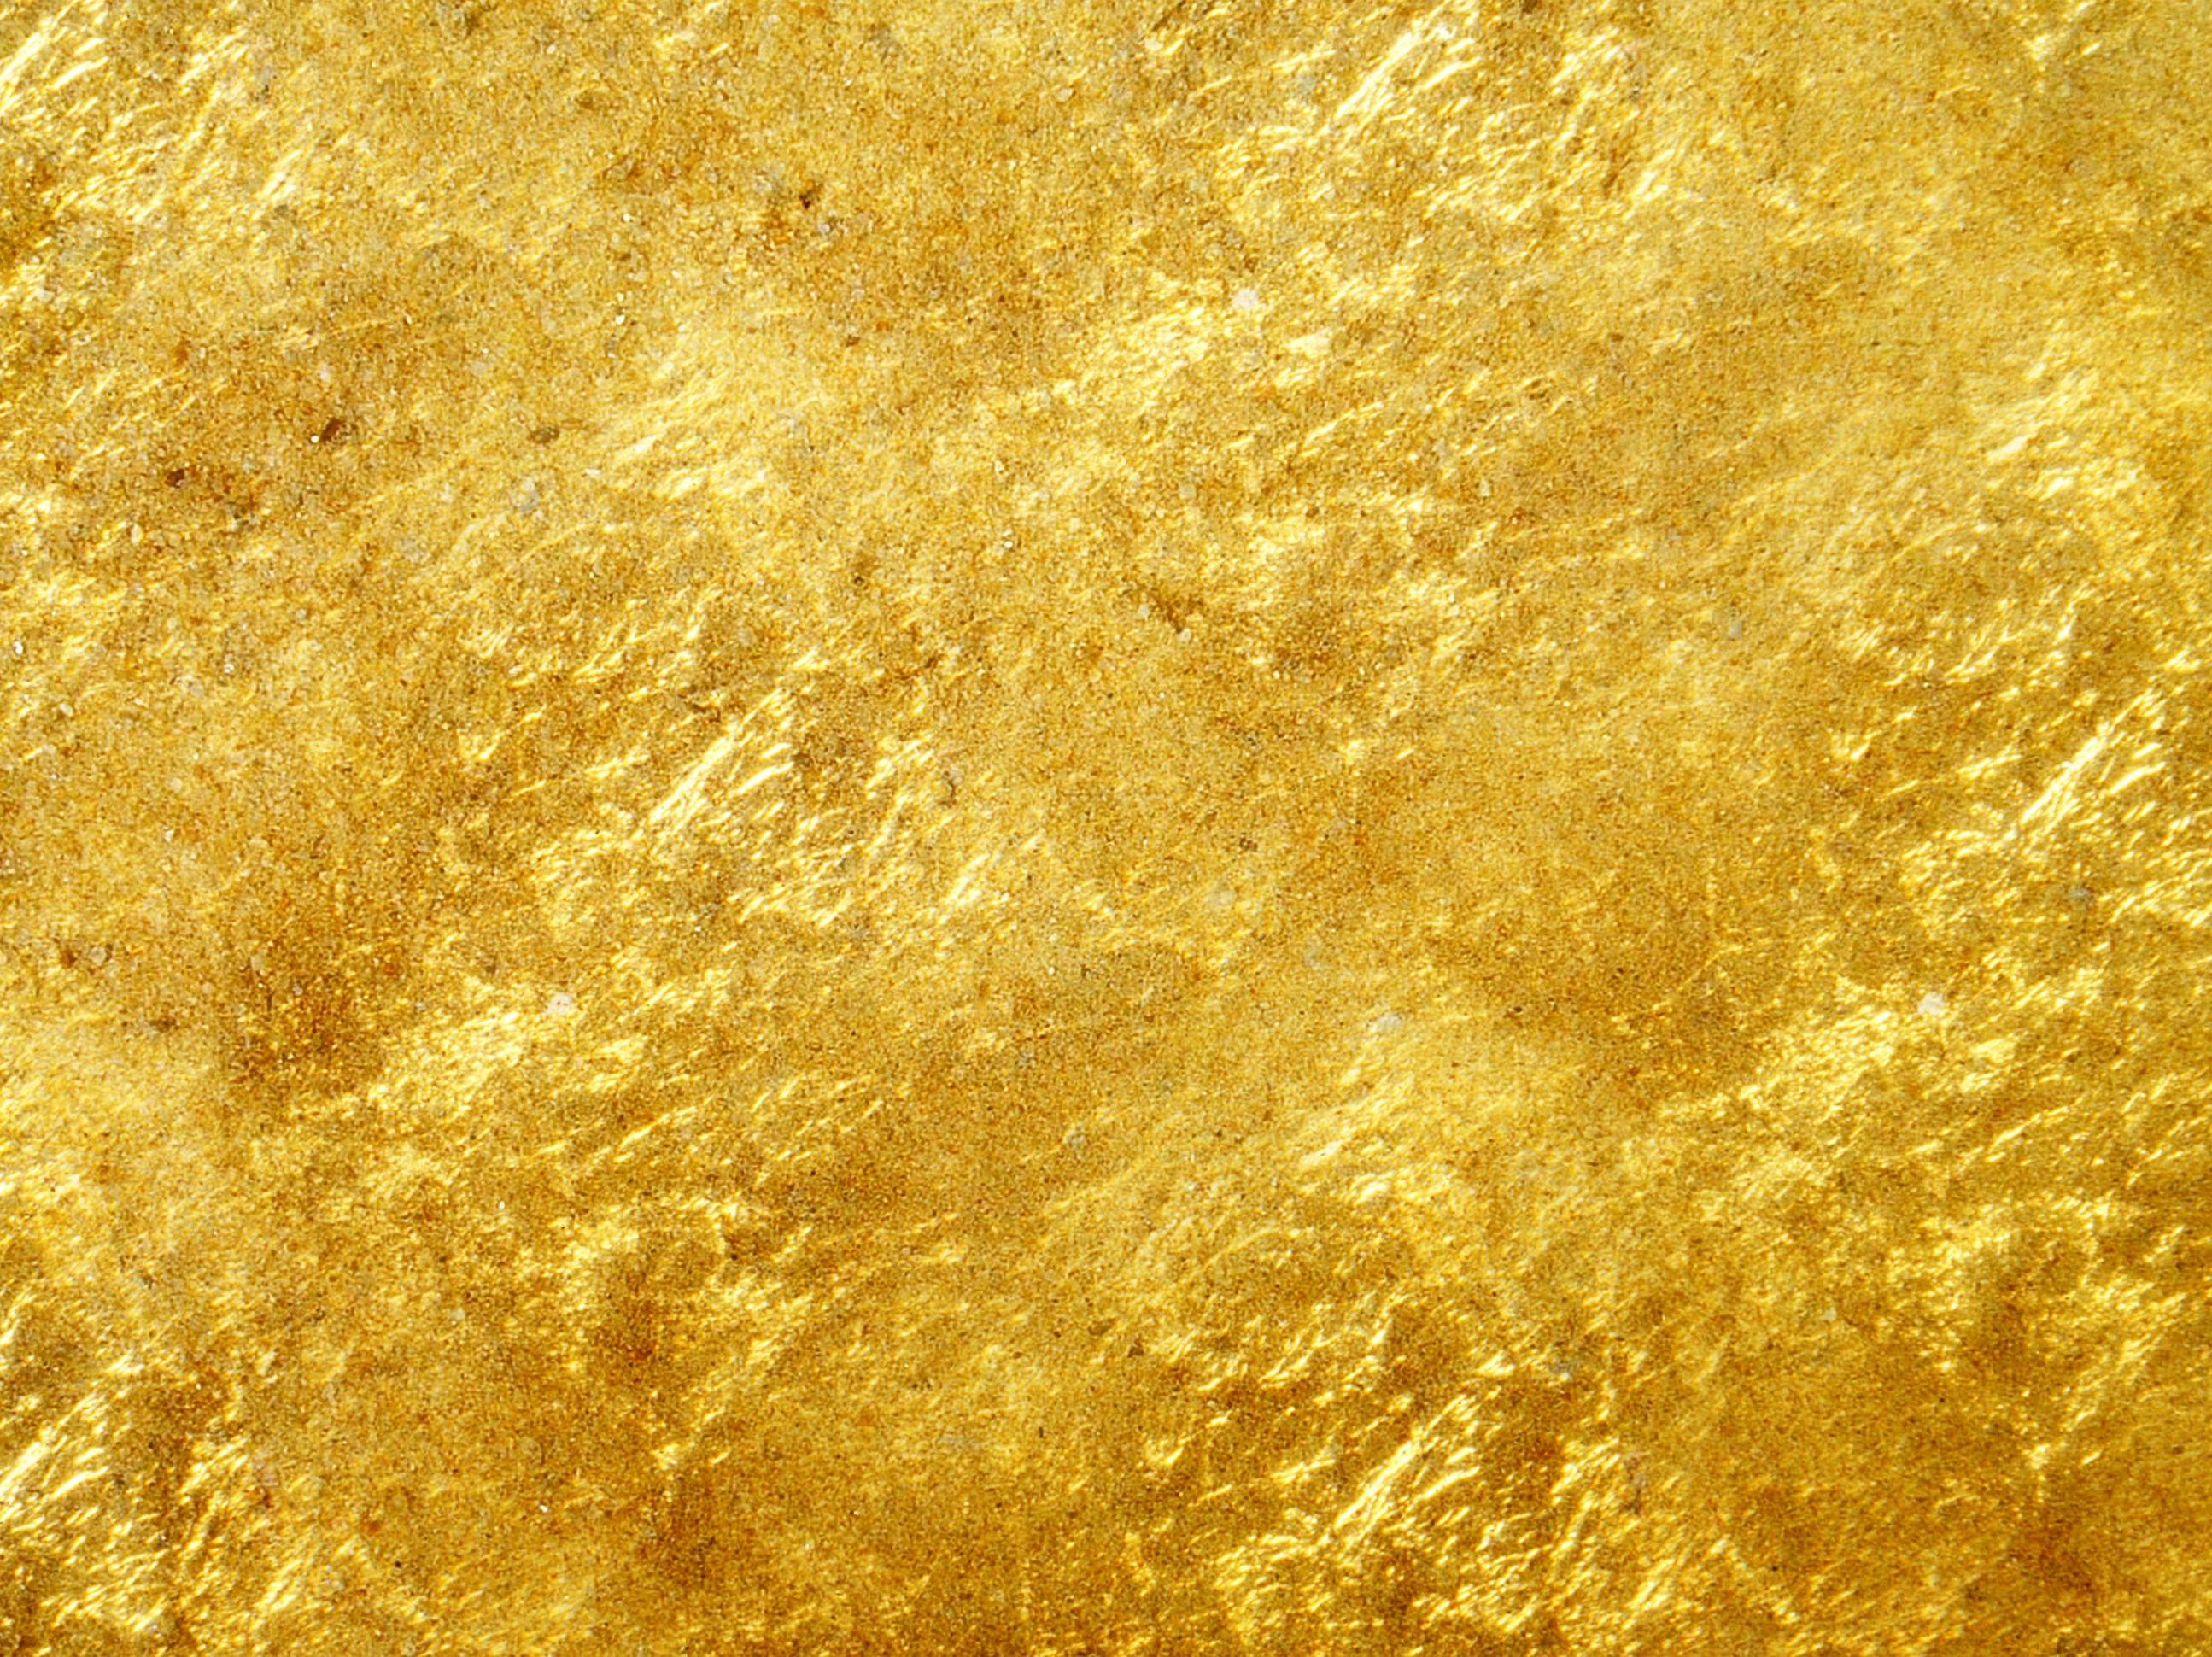 Gold Texture Wallpaper image gallery 2590x1940